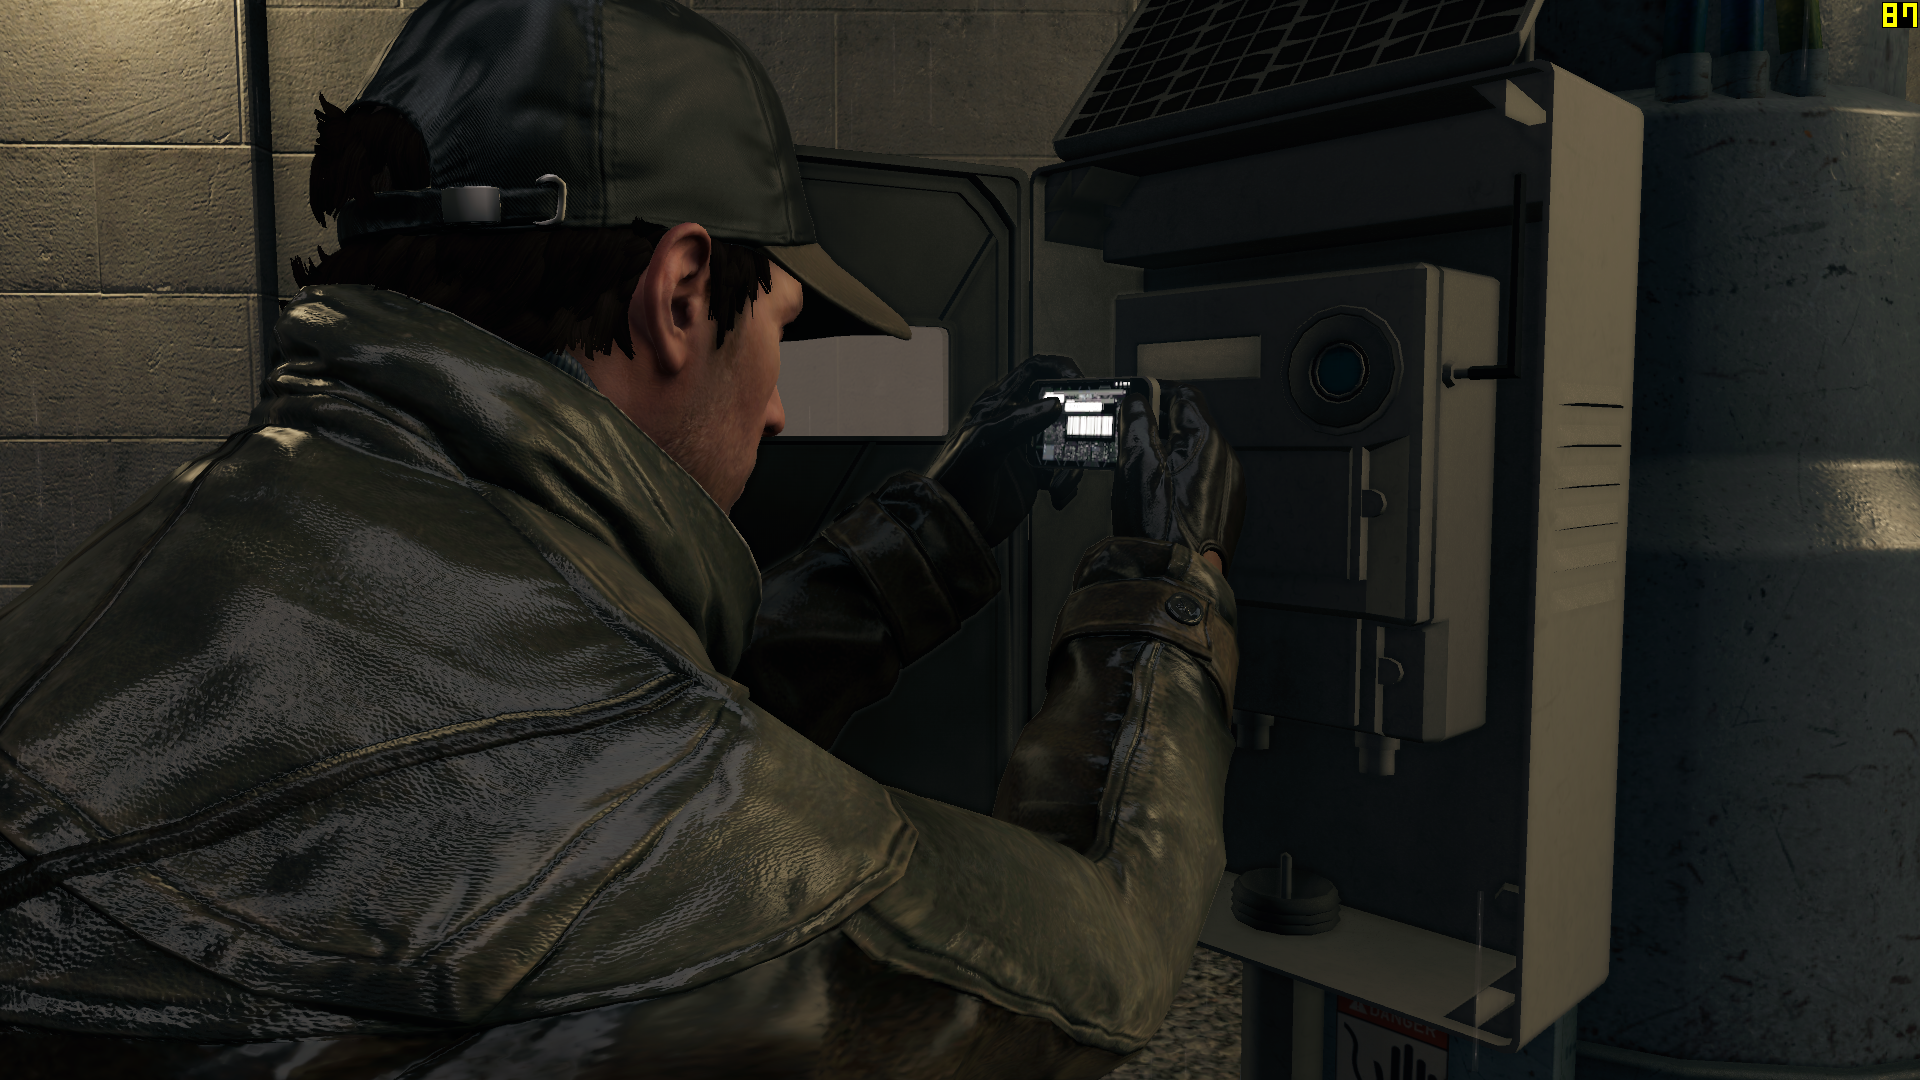 watch_dogs--012sgufp.png